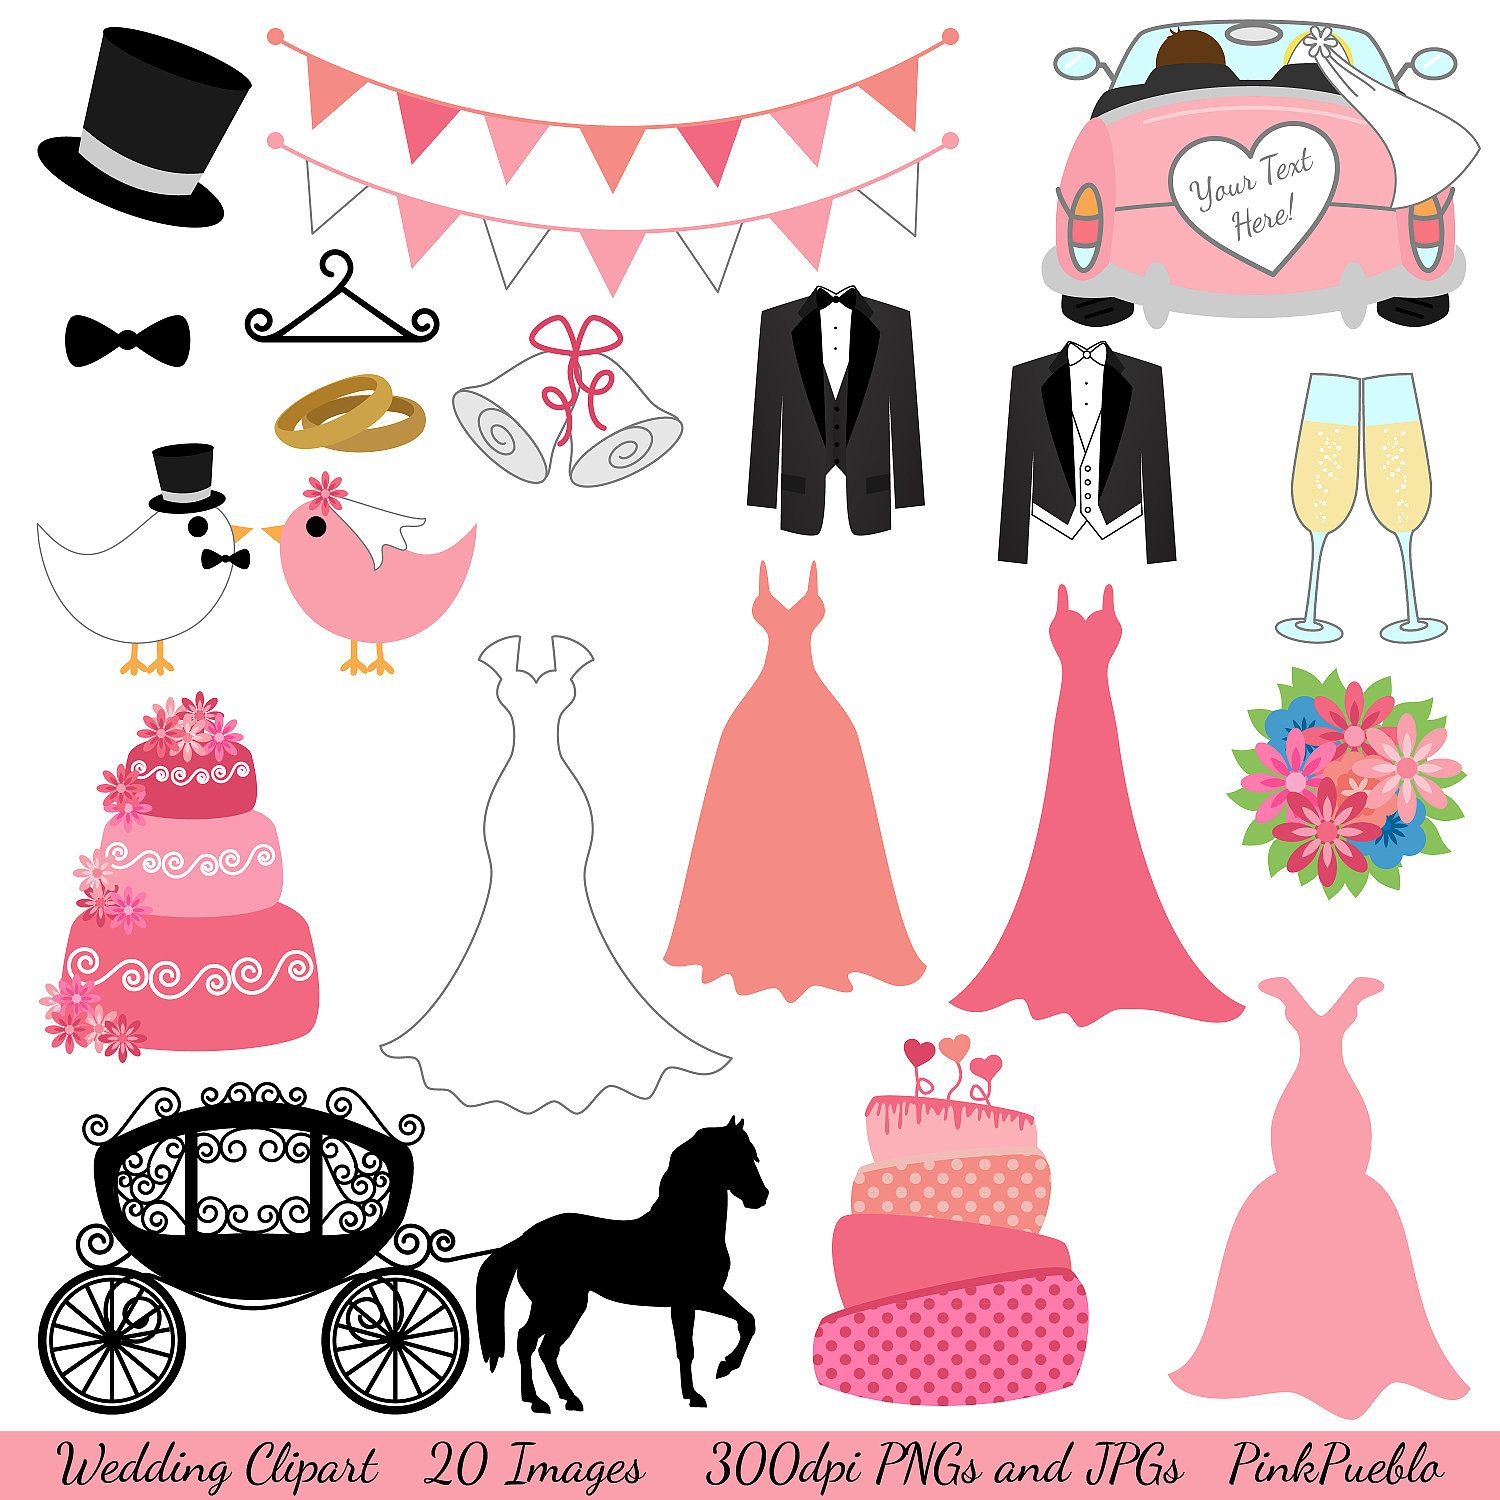 Wedding and Bridal Clipart Clip Art with Dresses, Tuxedos, Cake, Carriage - Commercial and Personal Use. $6.00, via Etsy.